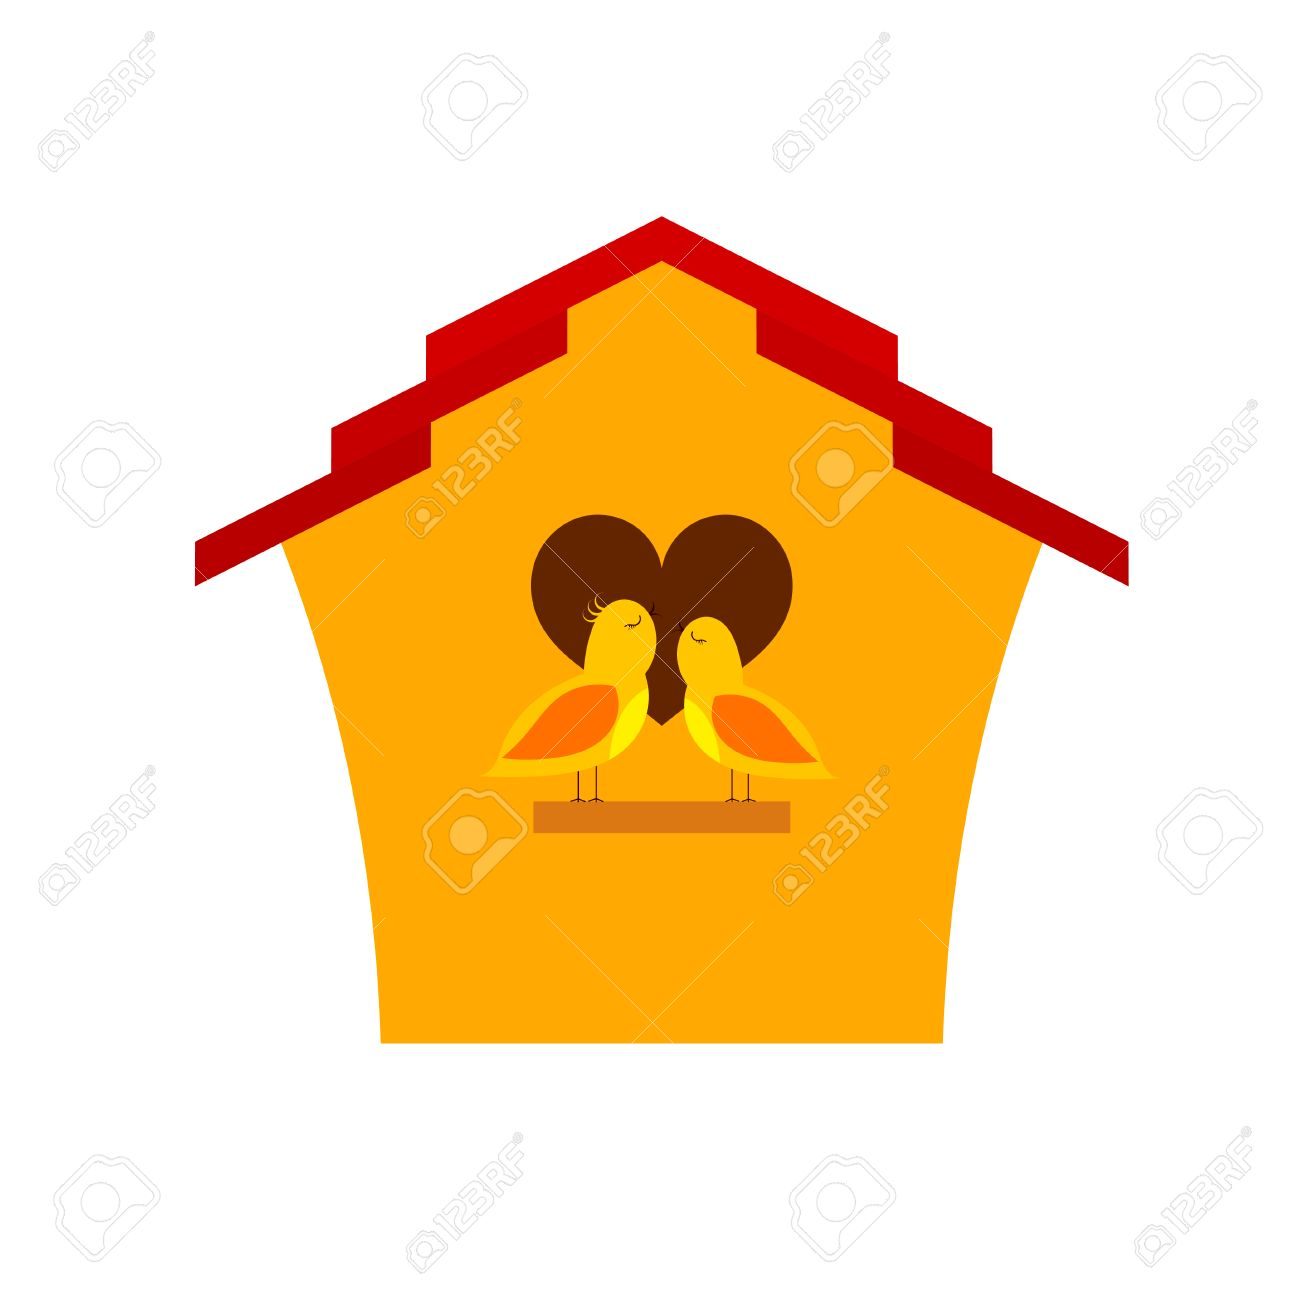 Vector   Yellow Cartoon Birdhouse With Birds. Two Birds In Front Of His  Home Singing A Song Of Love. Spring Season. Symbol Of Family, Love And  Prosperity.